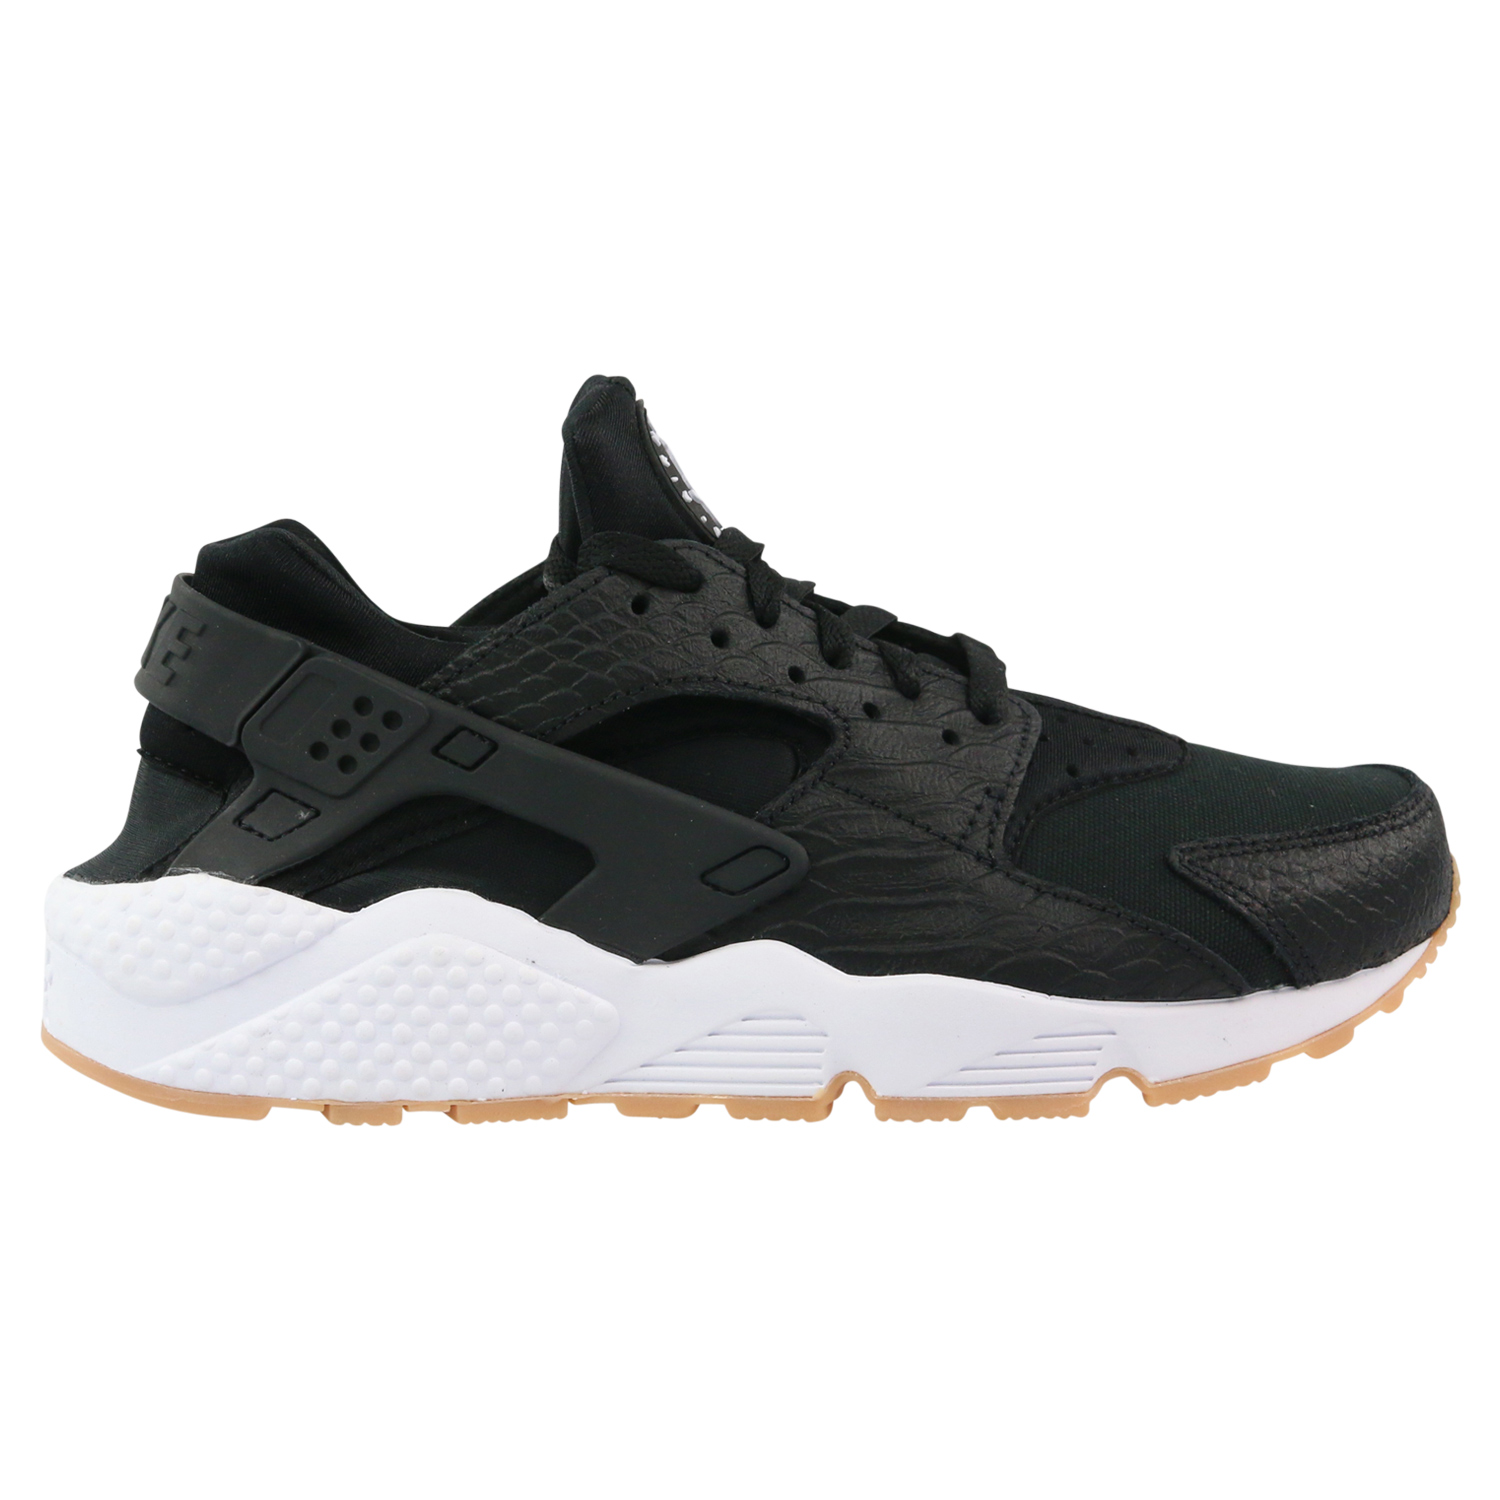 nike air huarache ultra premium se schuhe turnschuhe sneaker damen ebay. Black Bedroom Furniture Sets. Home Design Ideas